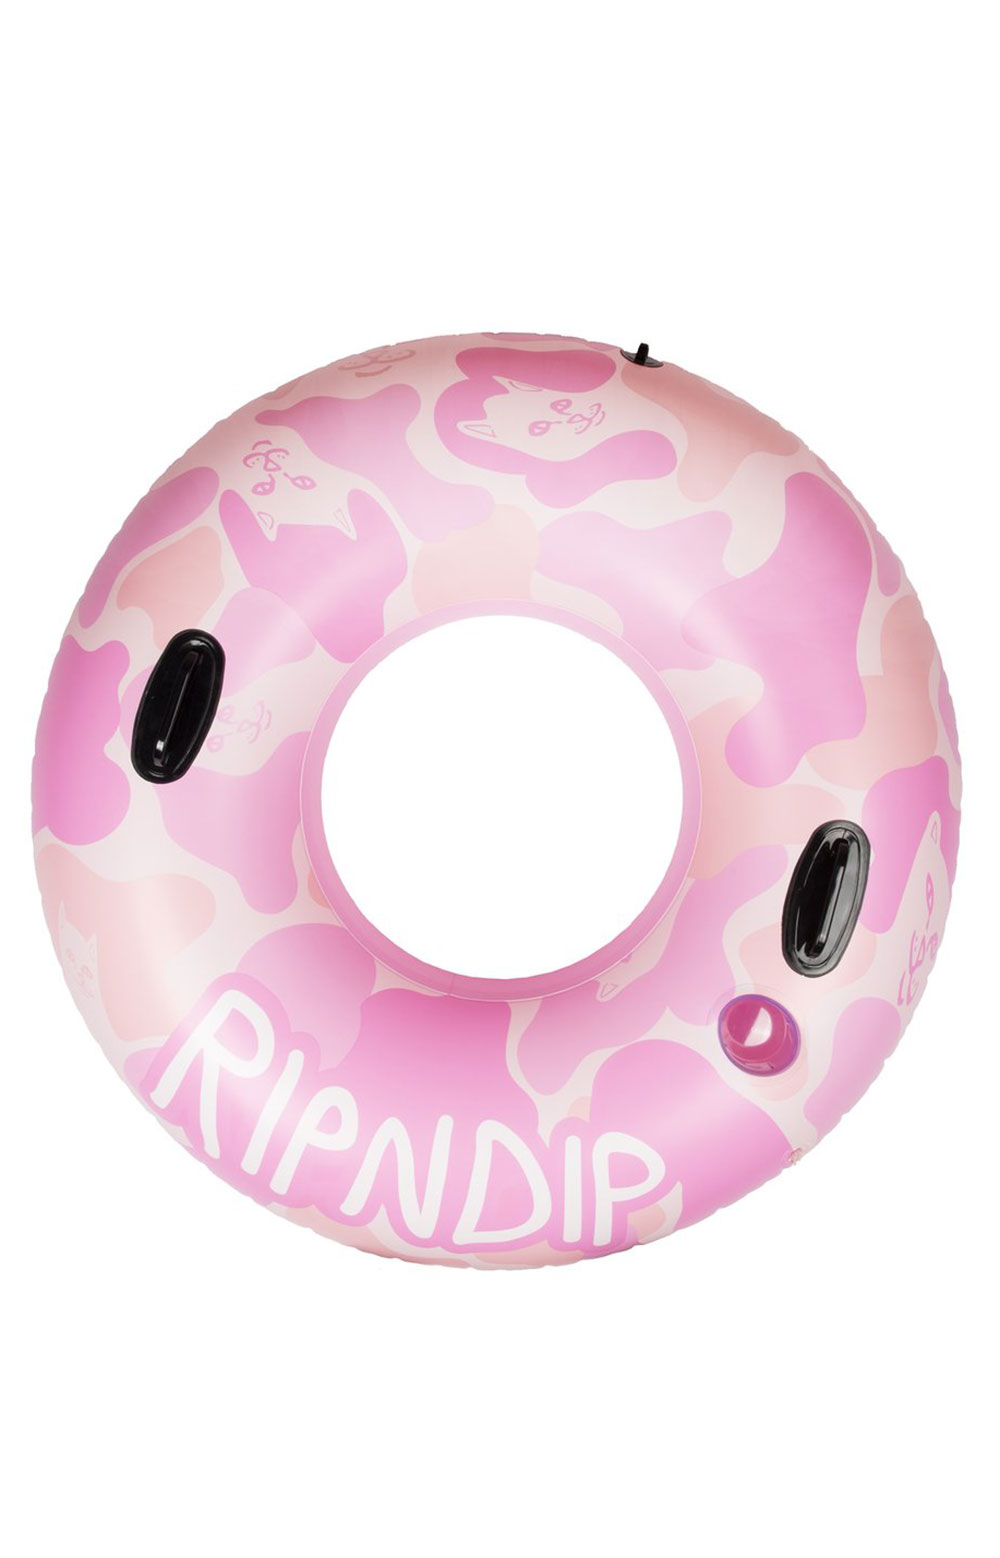 Tube Pool Float - Pink Camo